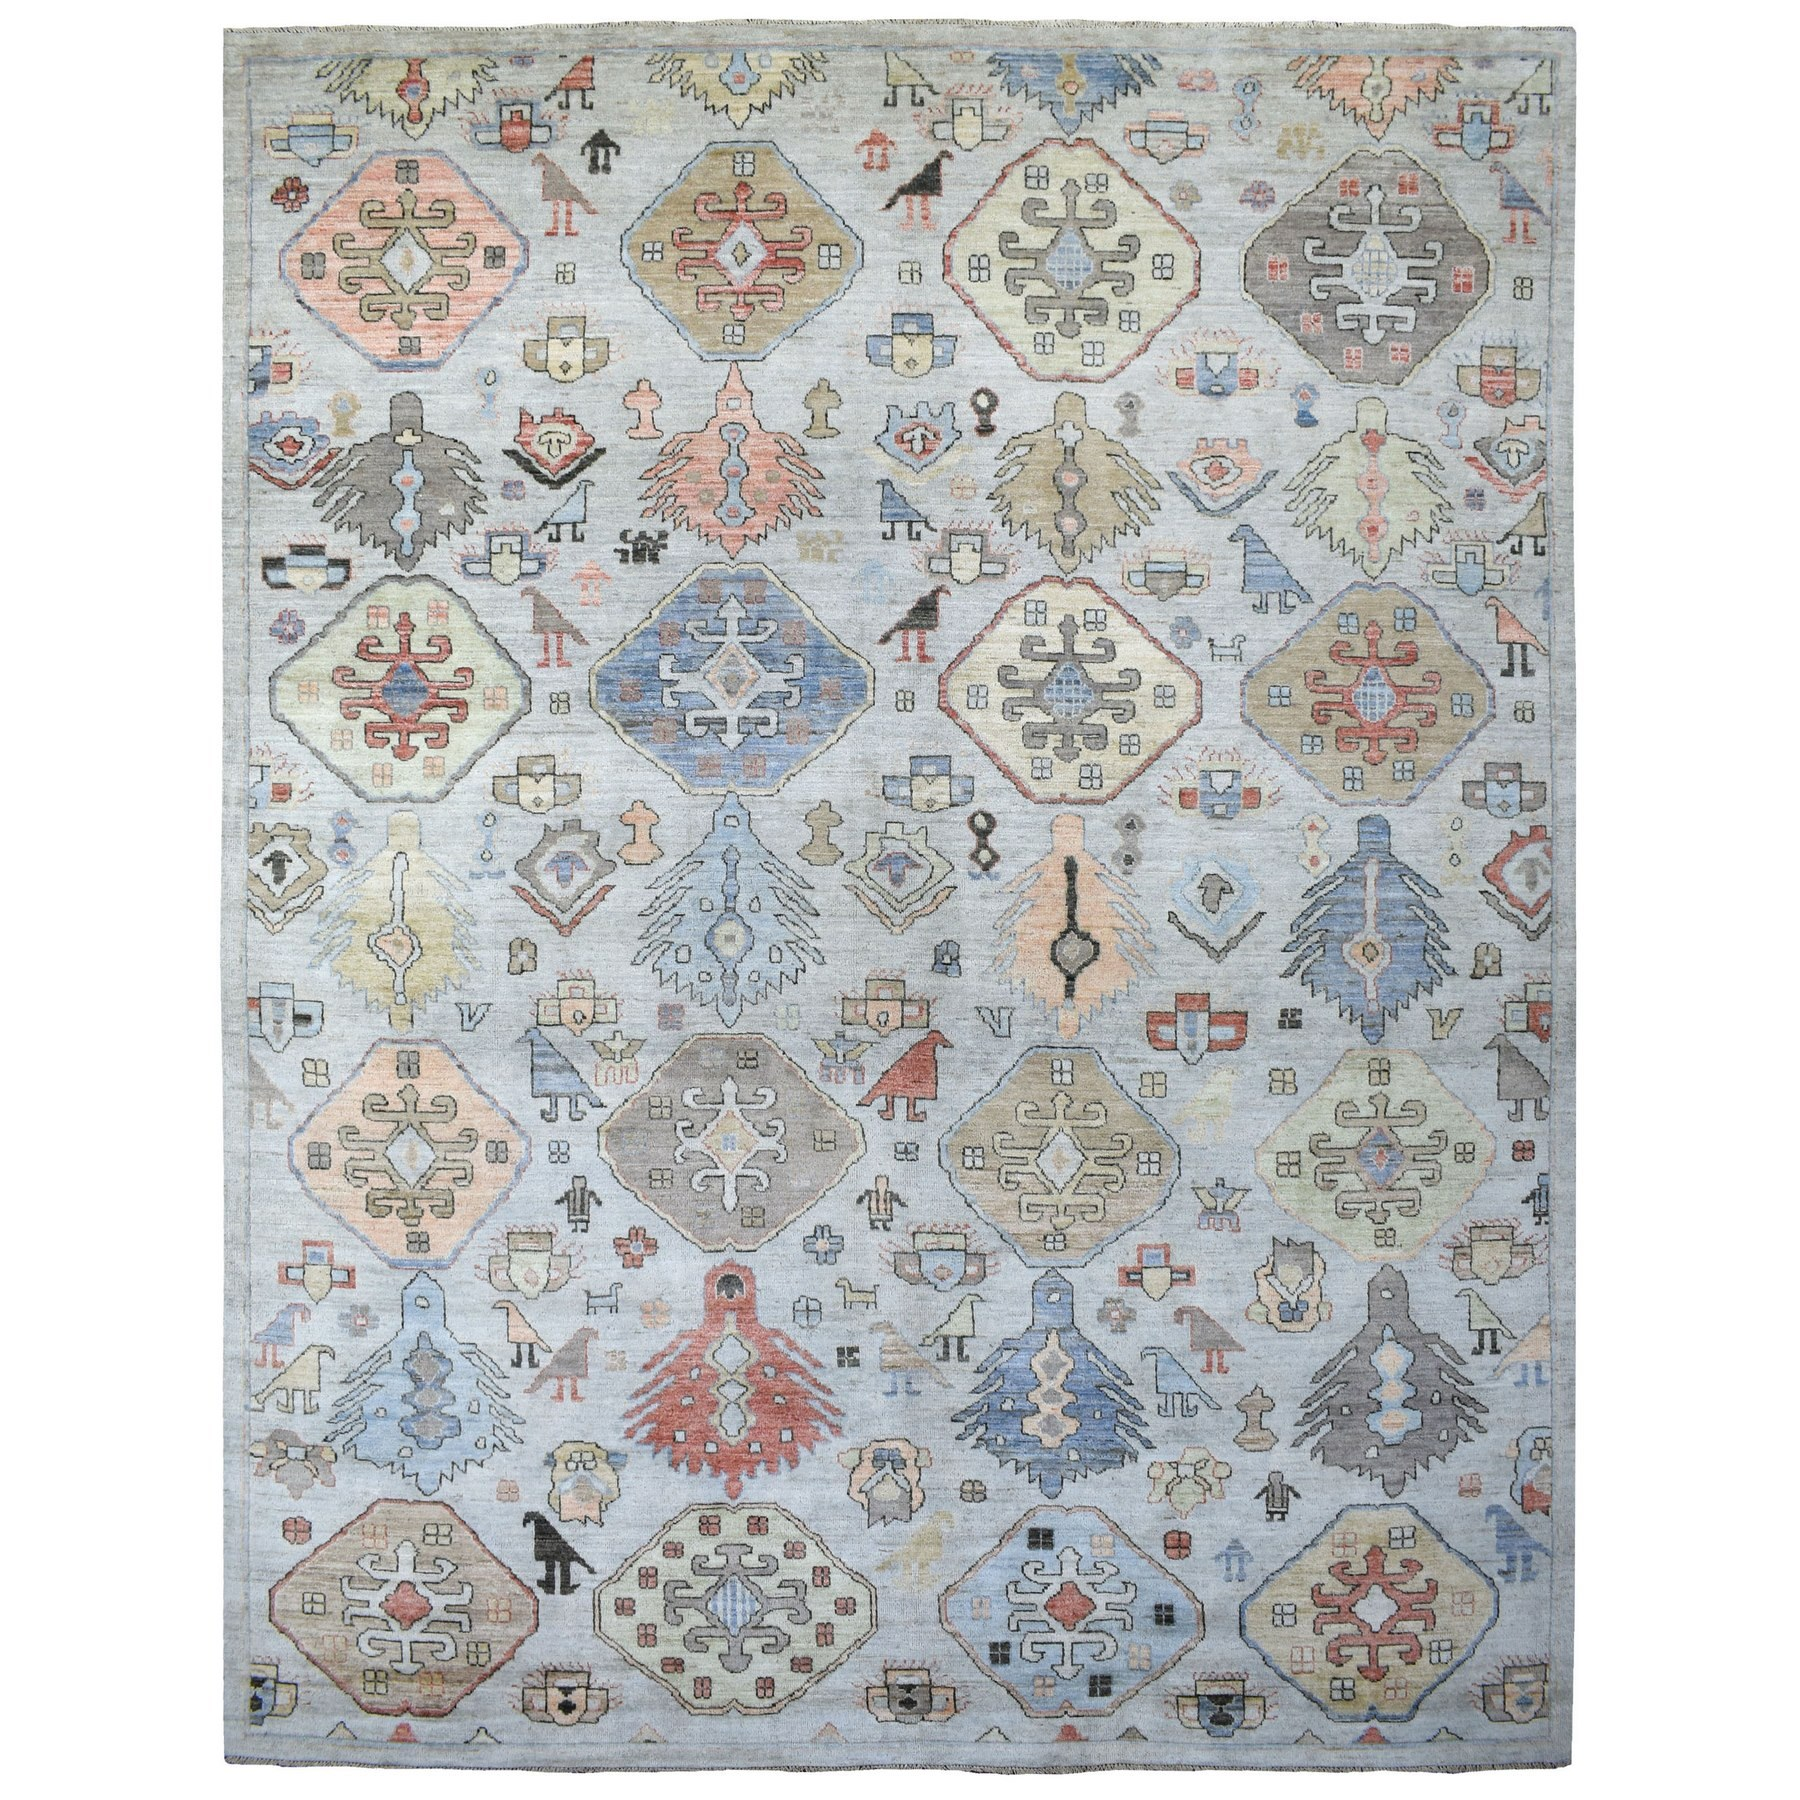 Tribal & Geometric Rugs LUV608958